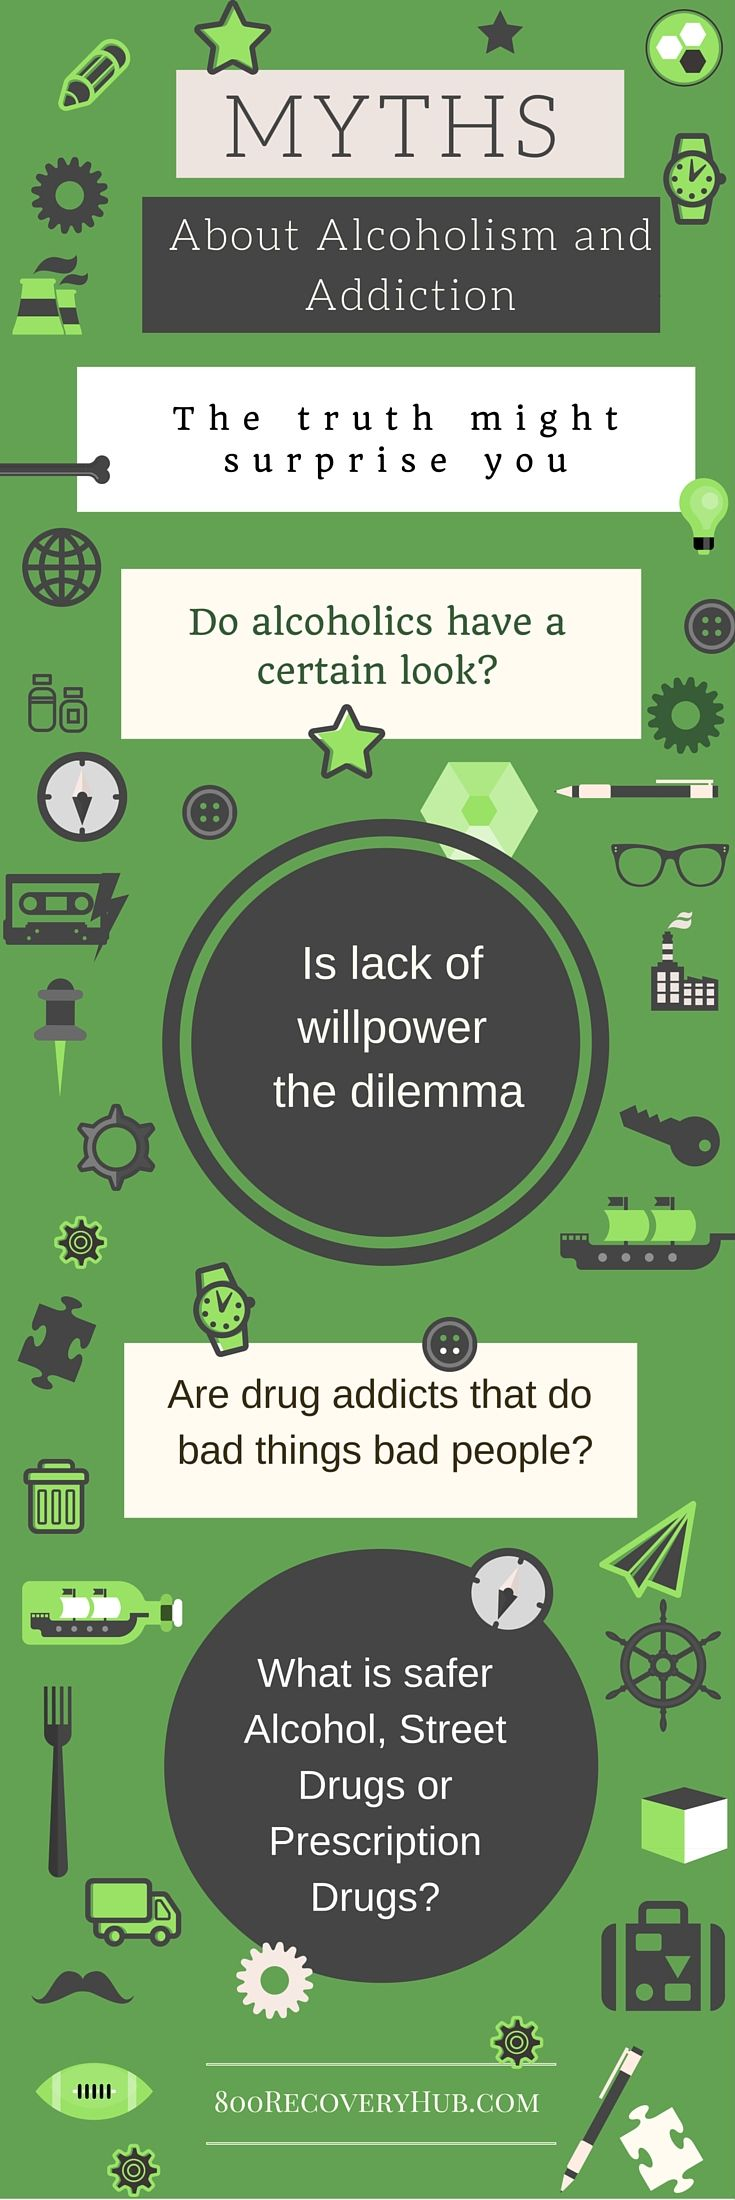 There are many drug addiction and alcoholism myths. Addiction is not a lack of willpower, alcoholics don't drink out of brown paper bags. Learn the truth and clear up any confusion you have about the disease. It is treatable.